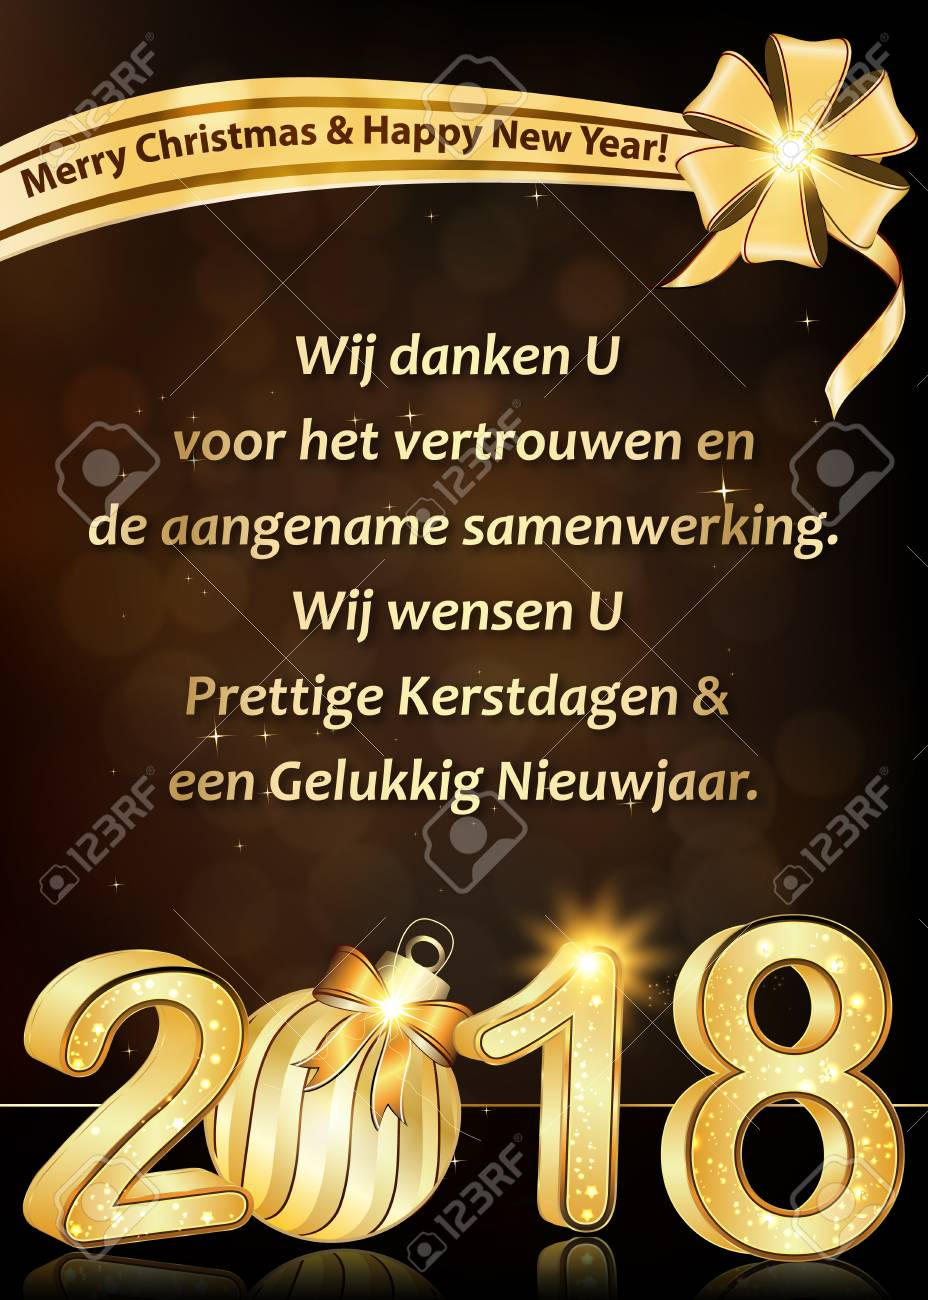 Thank you dutch business new year greeting card we wish to thank stock photo thank you dutch business new year greeting card we wish to thank you for your trust and cooperation we wish you merry christmas and happy colourmoves